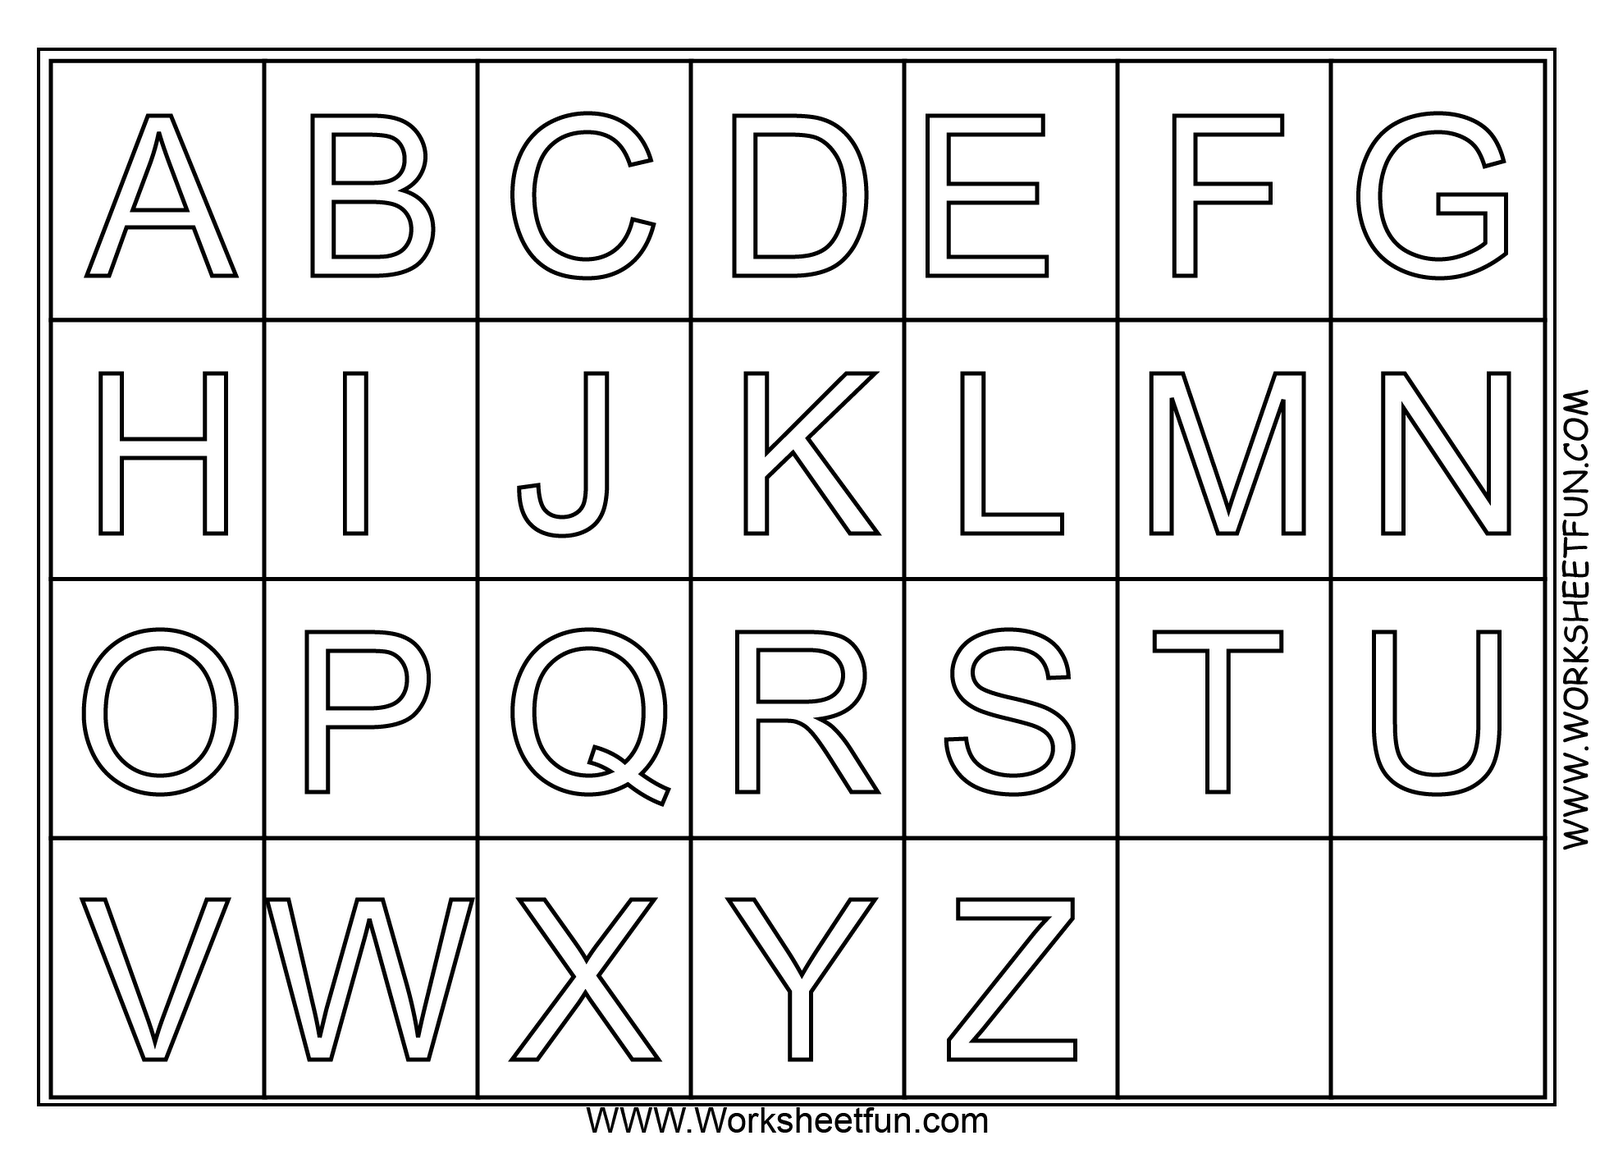 To Worksheet Letters Coloring Worksheets For Preschool